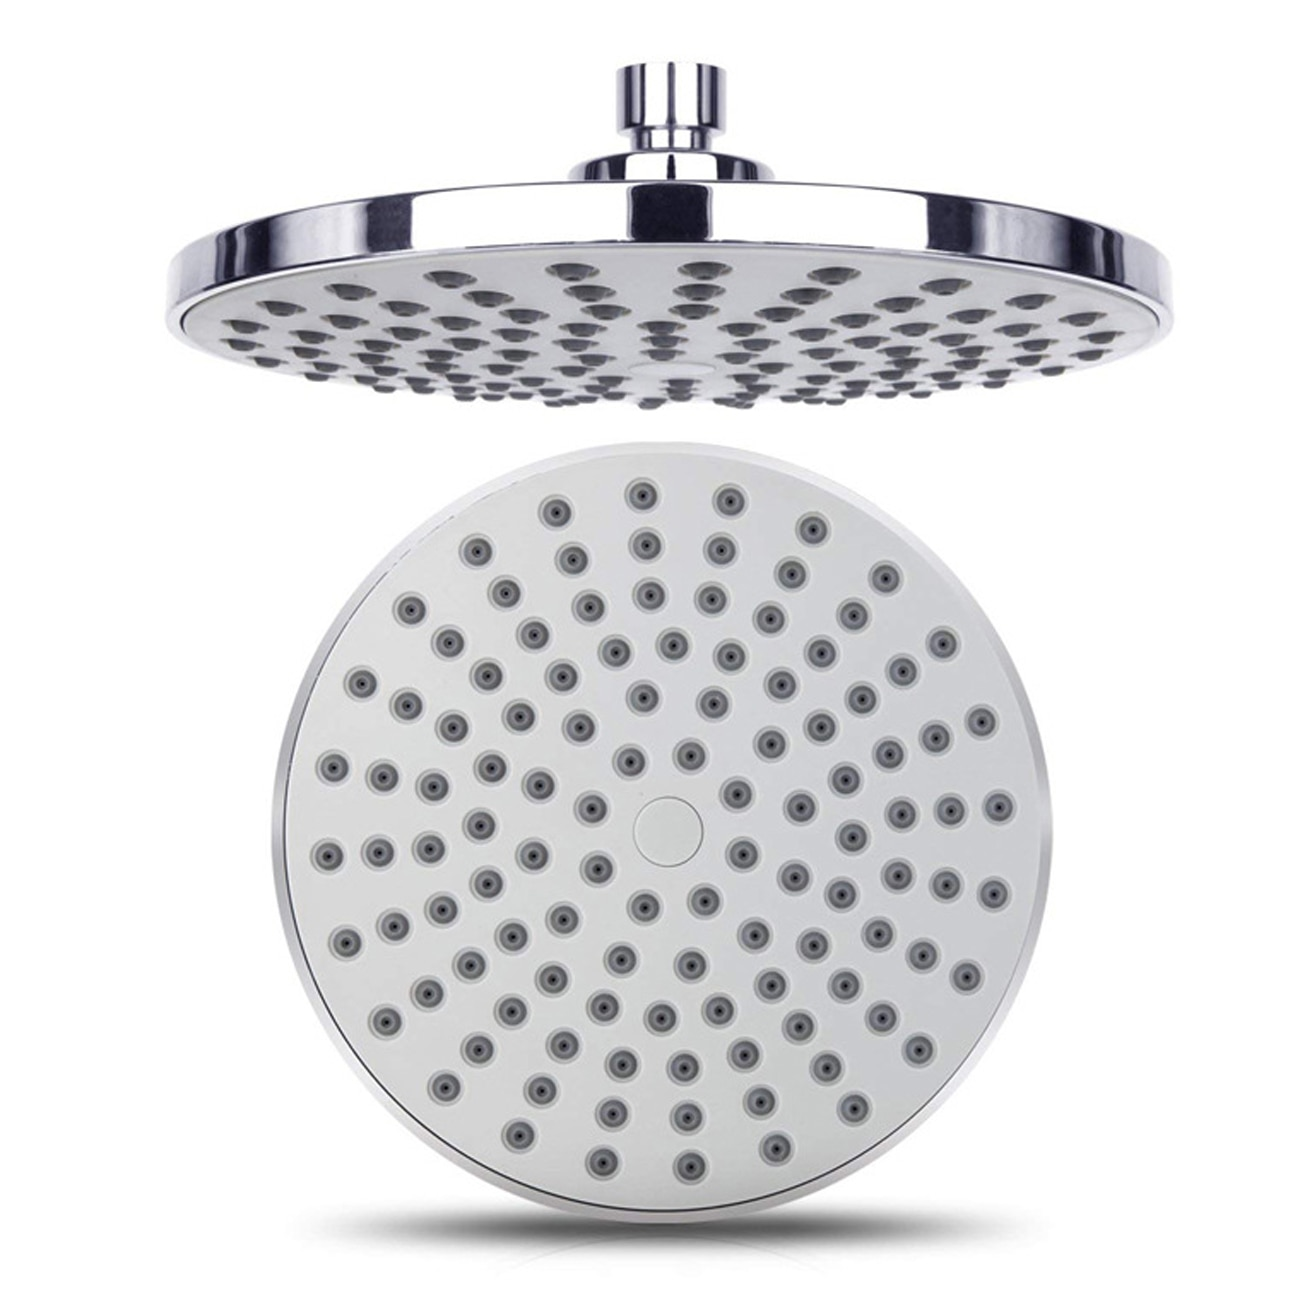 High Pressure 8-Inch Round Fixed Shower Head Rainfall Shower Head Shower Faucet Shower Head Bathroom Accessories bakala bathroom led shower set 2 functions led digital display shower mixer concealed shower faucet 8 inch rainfall shower head